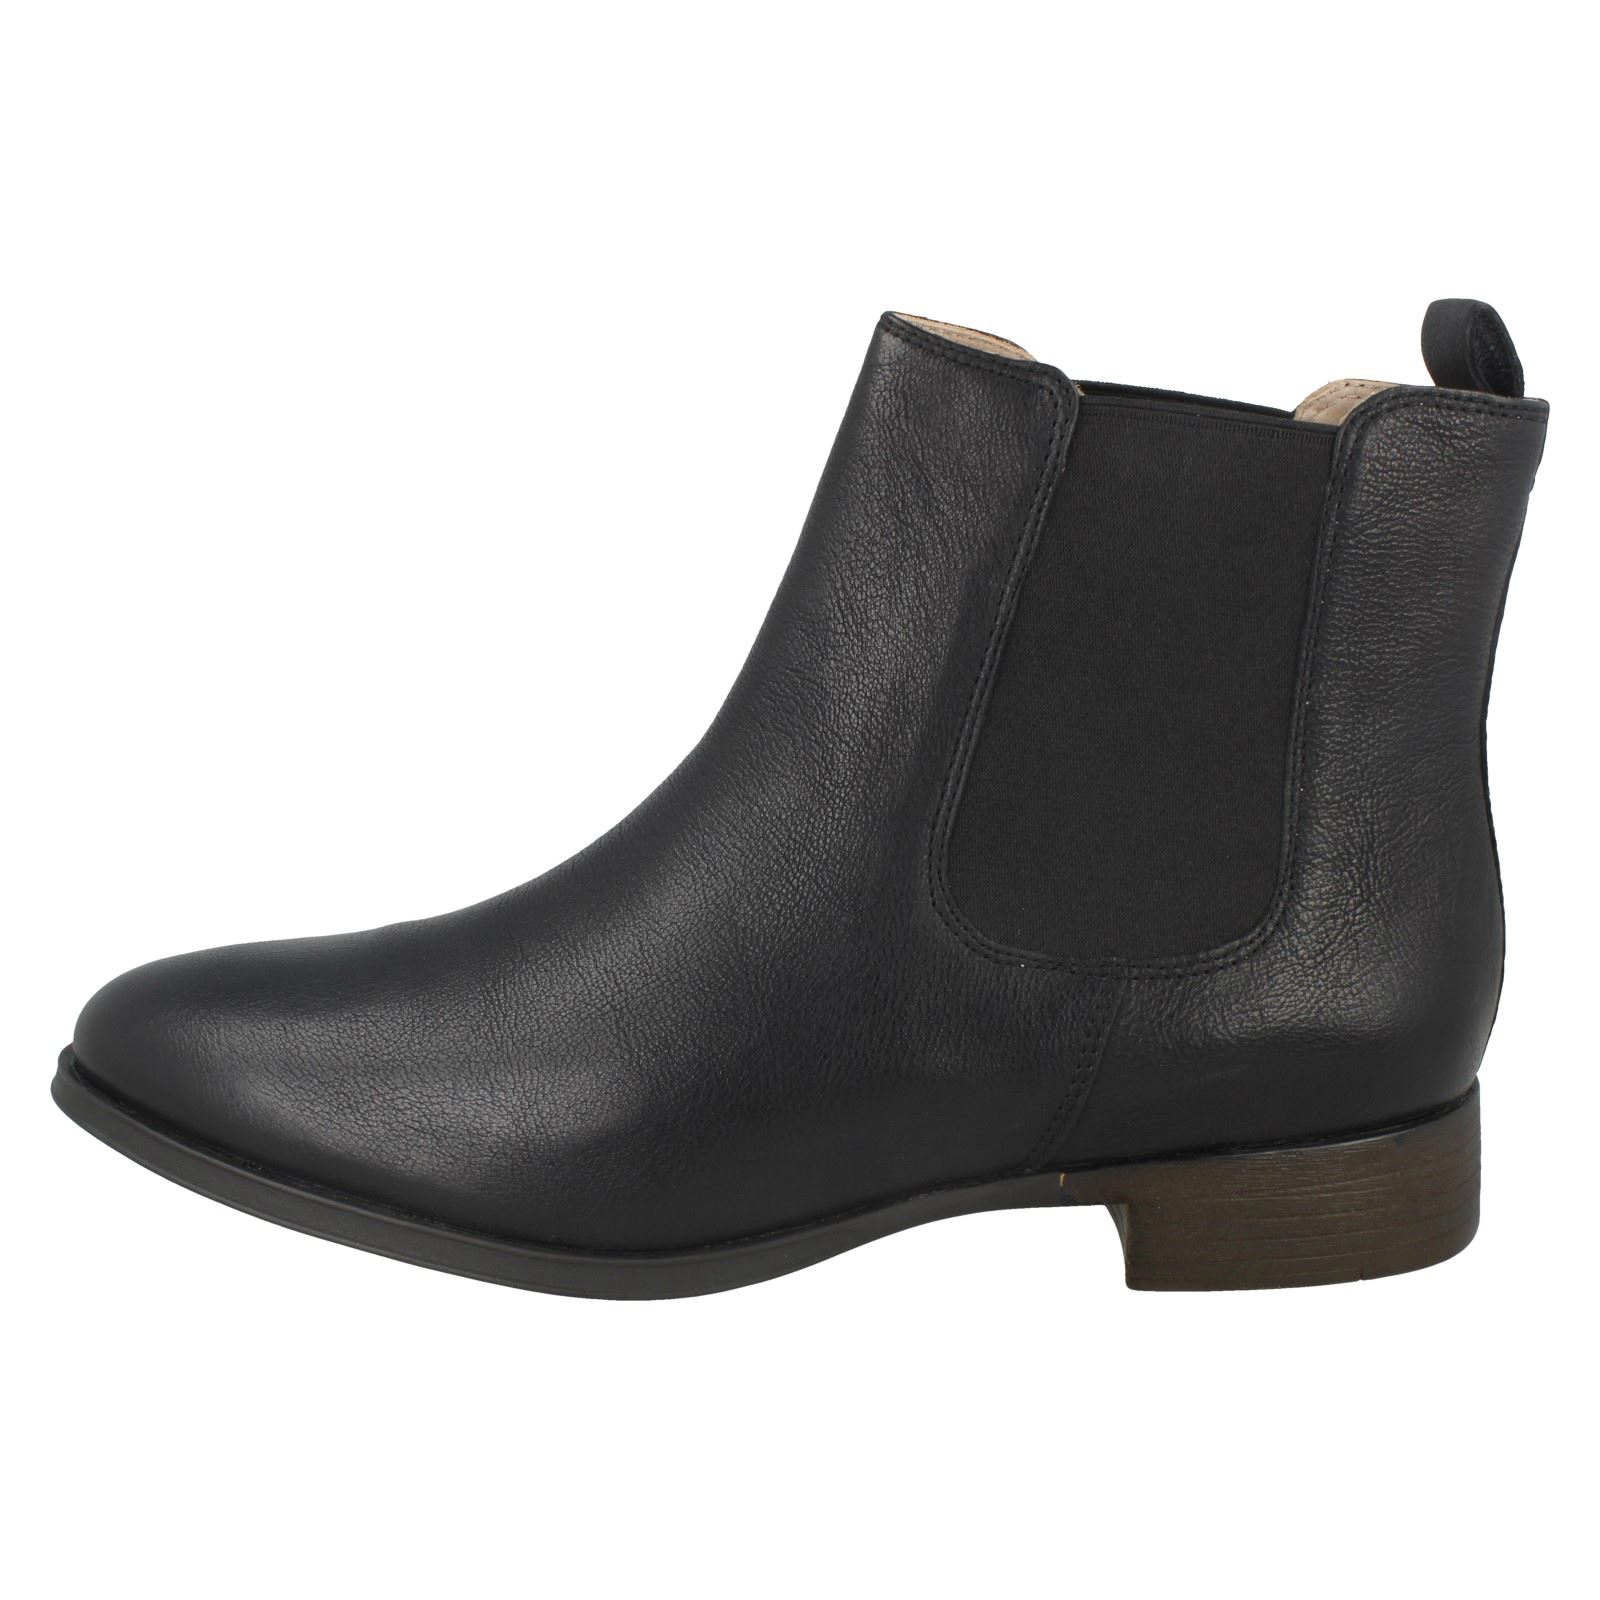 Men's/Women's Ladies Clarks Ankle Beautiful Boots Mariella Busby Beautiful Ankle color low cost Reliable reputation d21995